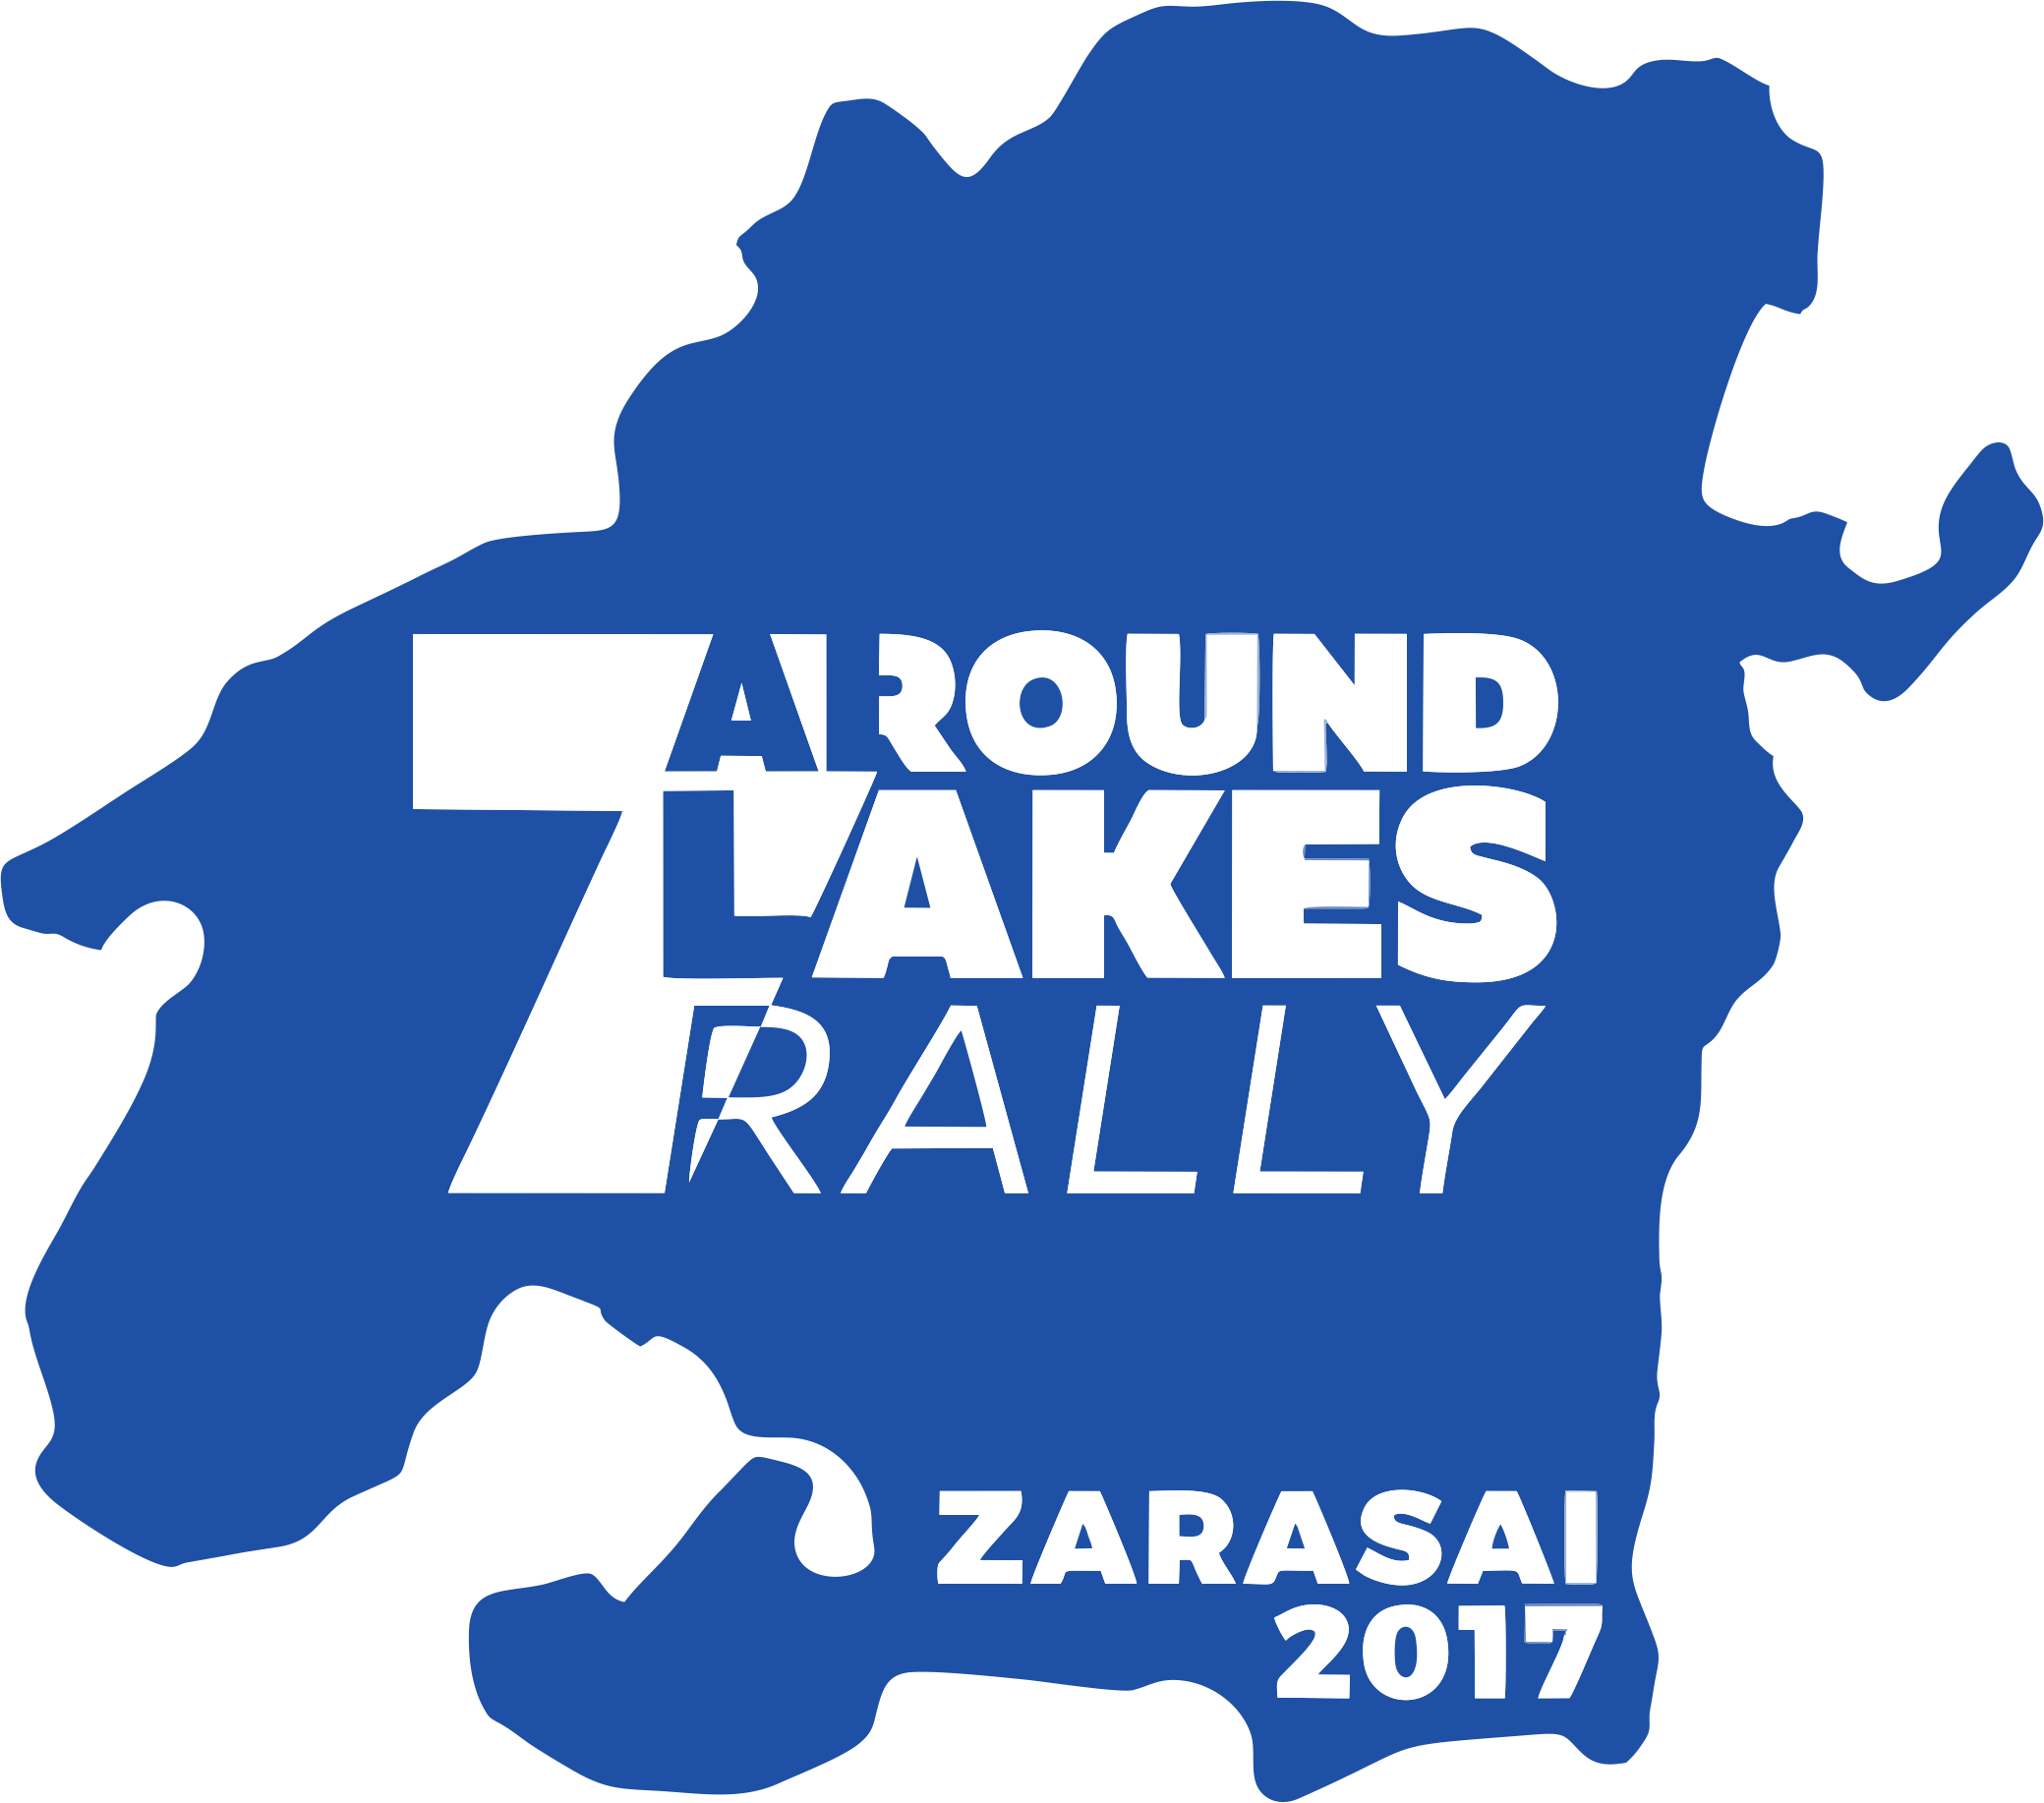 7 Lakes rally logo